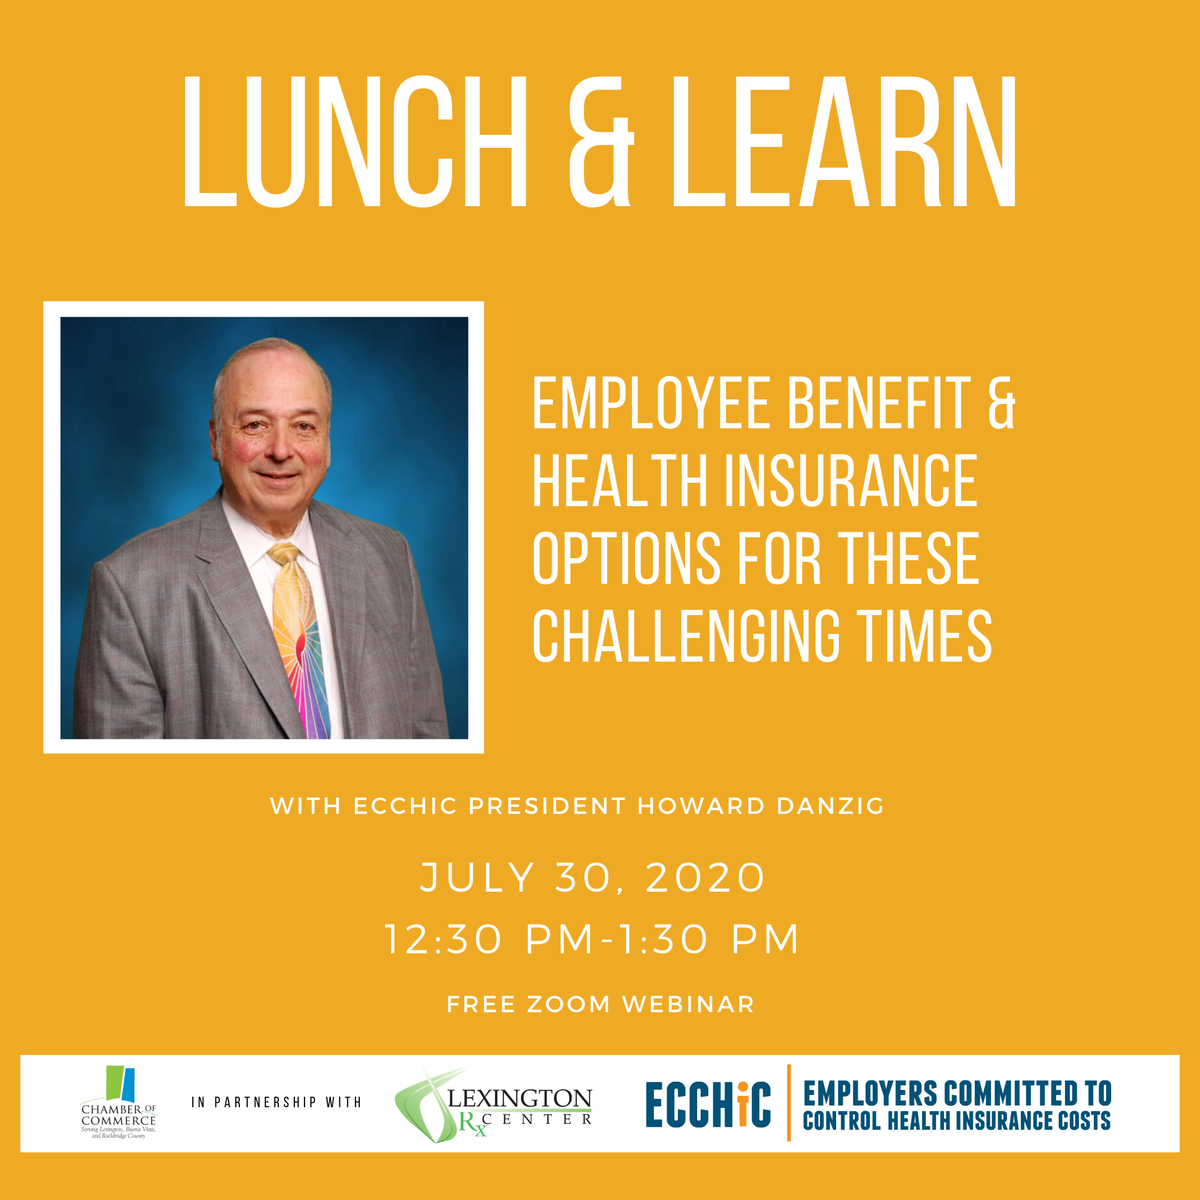 #ChamberEvent You are invited to join us for a webinar with Lexington Prescription Center and The Ecchic Group to learn how employers of all types are avoiding year to year health insurance cost increases without cutting employee benefits.  REGISTER: